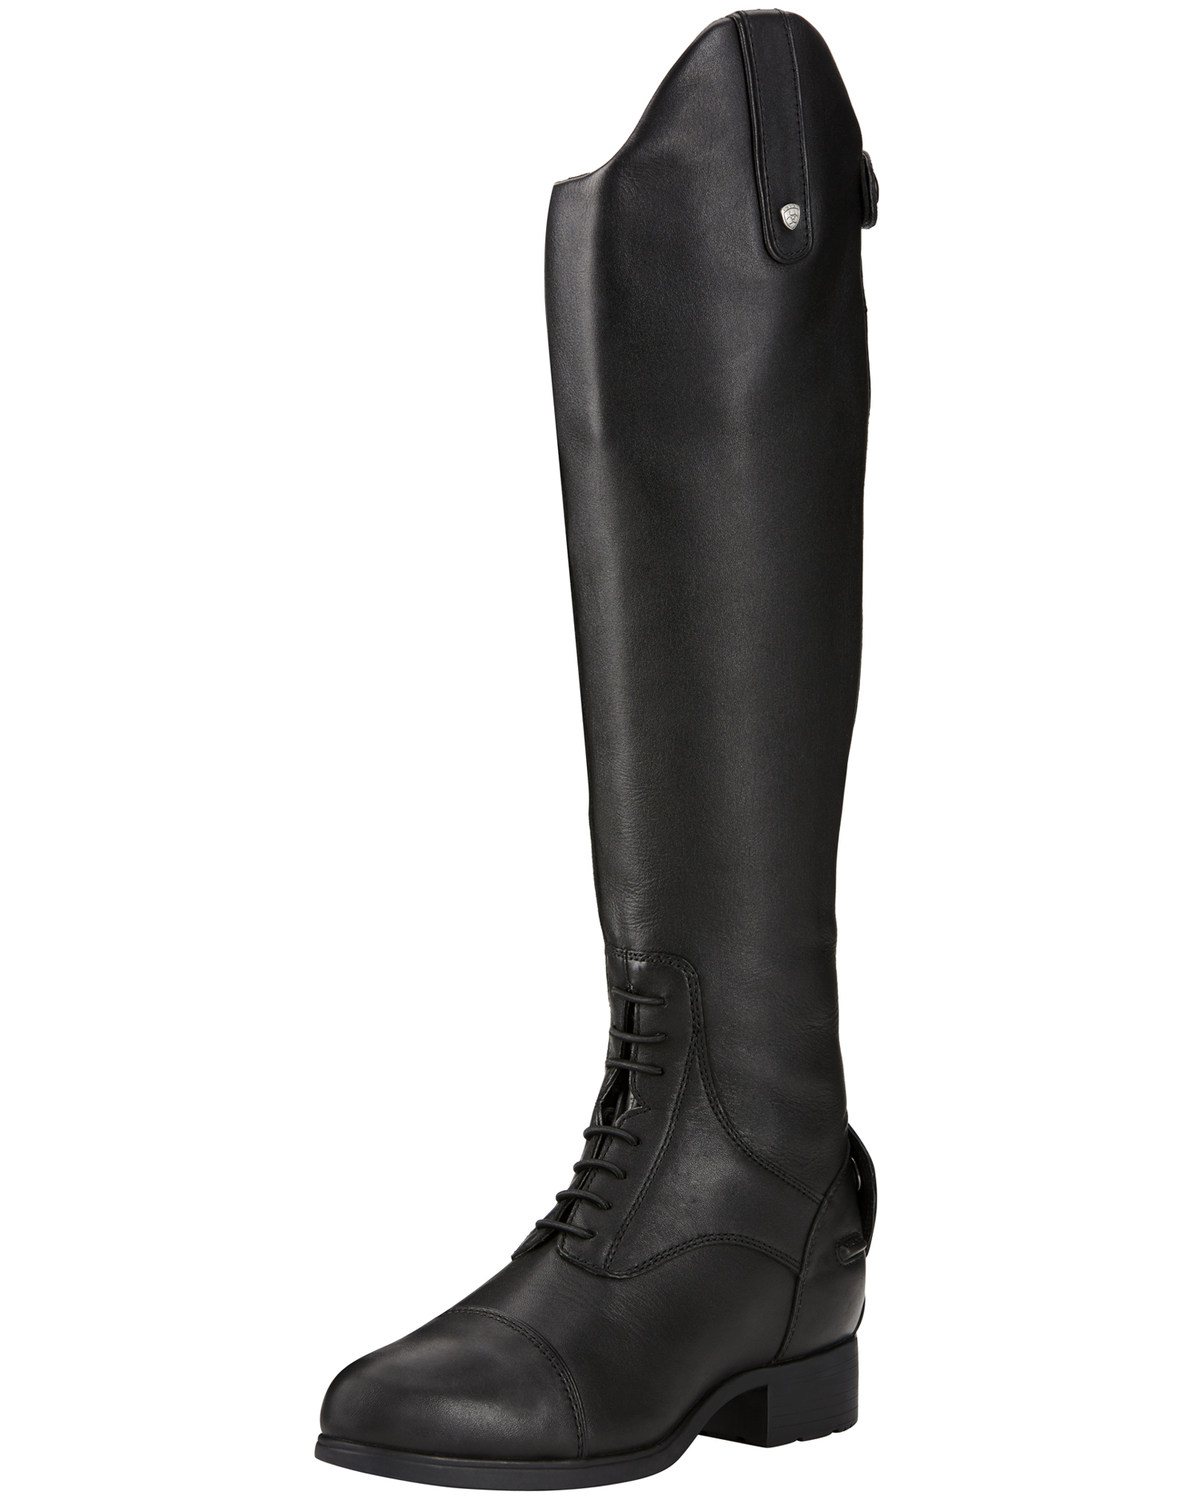 eaaa6666c Ariat Women s Bromont Pro H2O Insulated Riding Boots